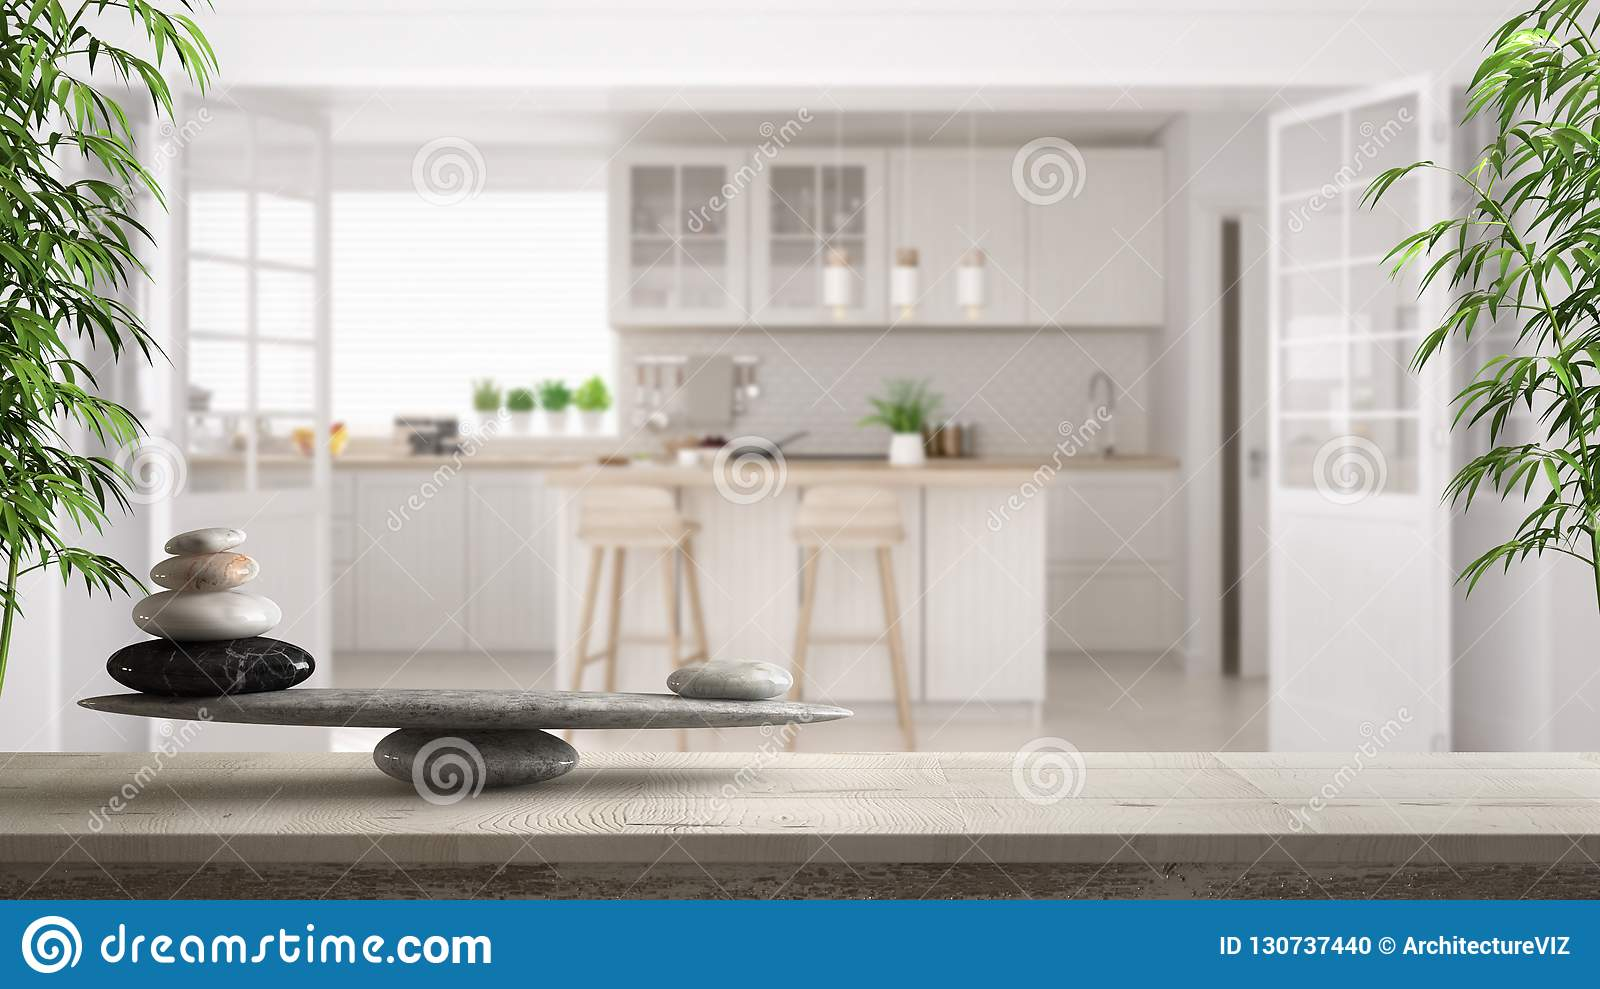 Wooden vintage table or shelf with stone balance, over blurred scandinavian classic white kitchen, feng shui, zen concept architec